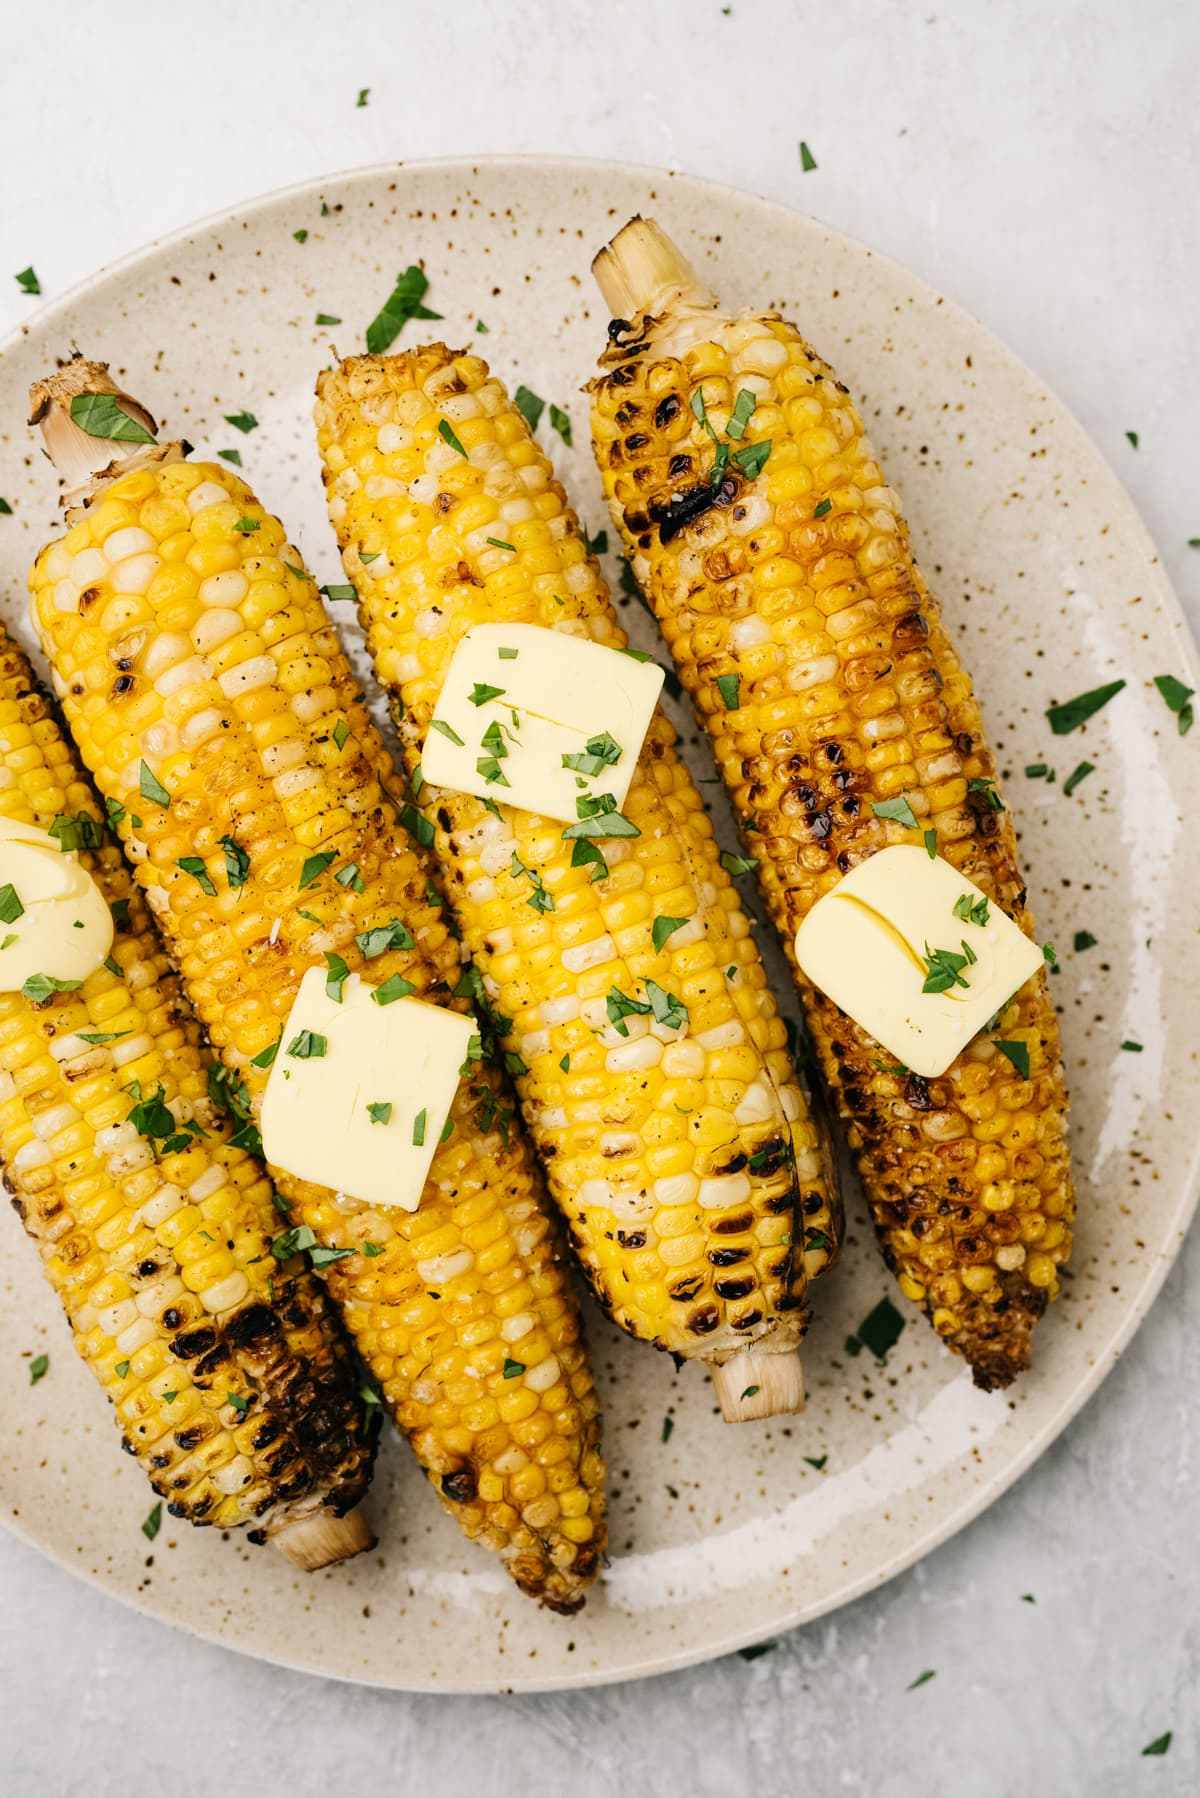 Four ears of charred grilled corn topped with butter on a speckled tan plate.